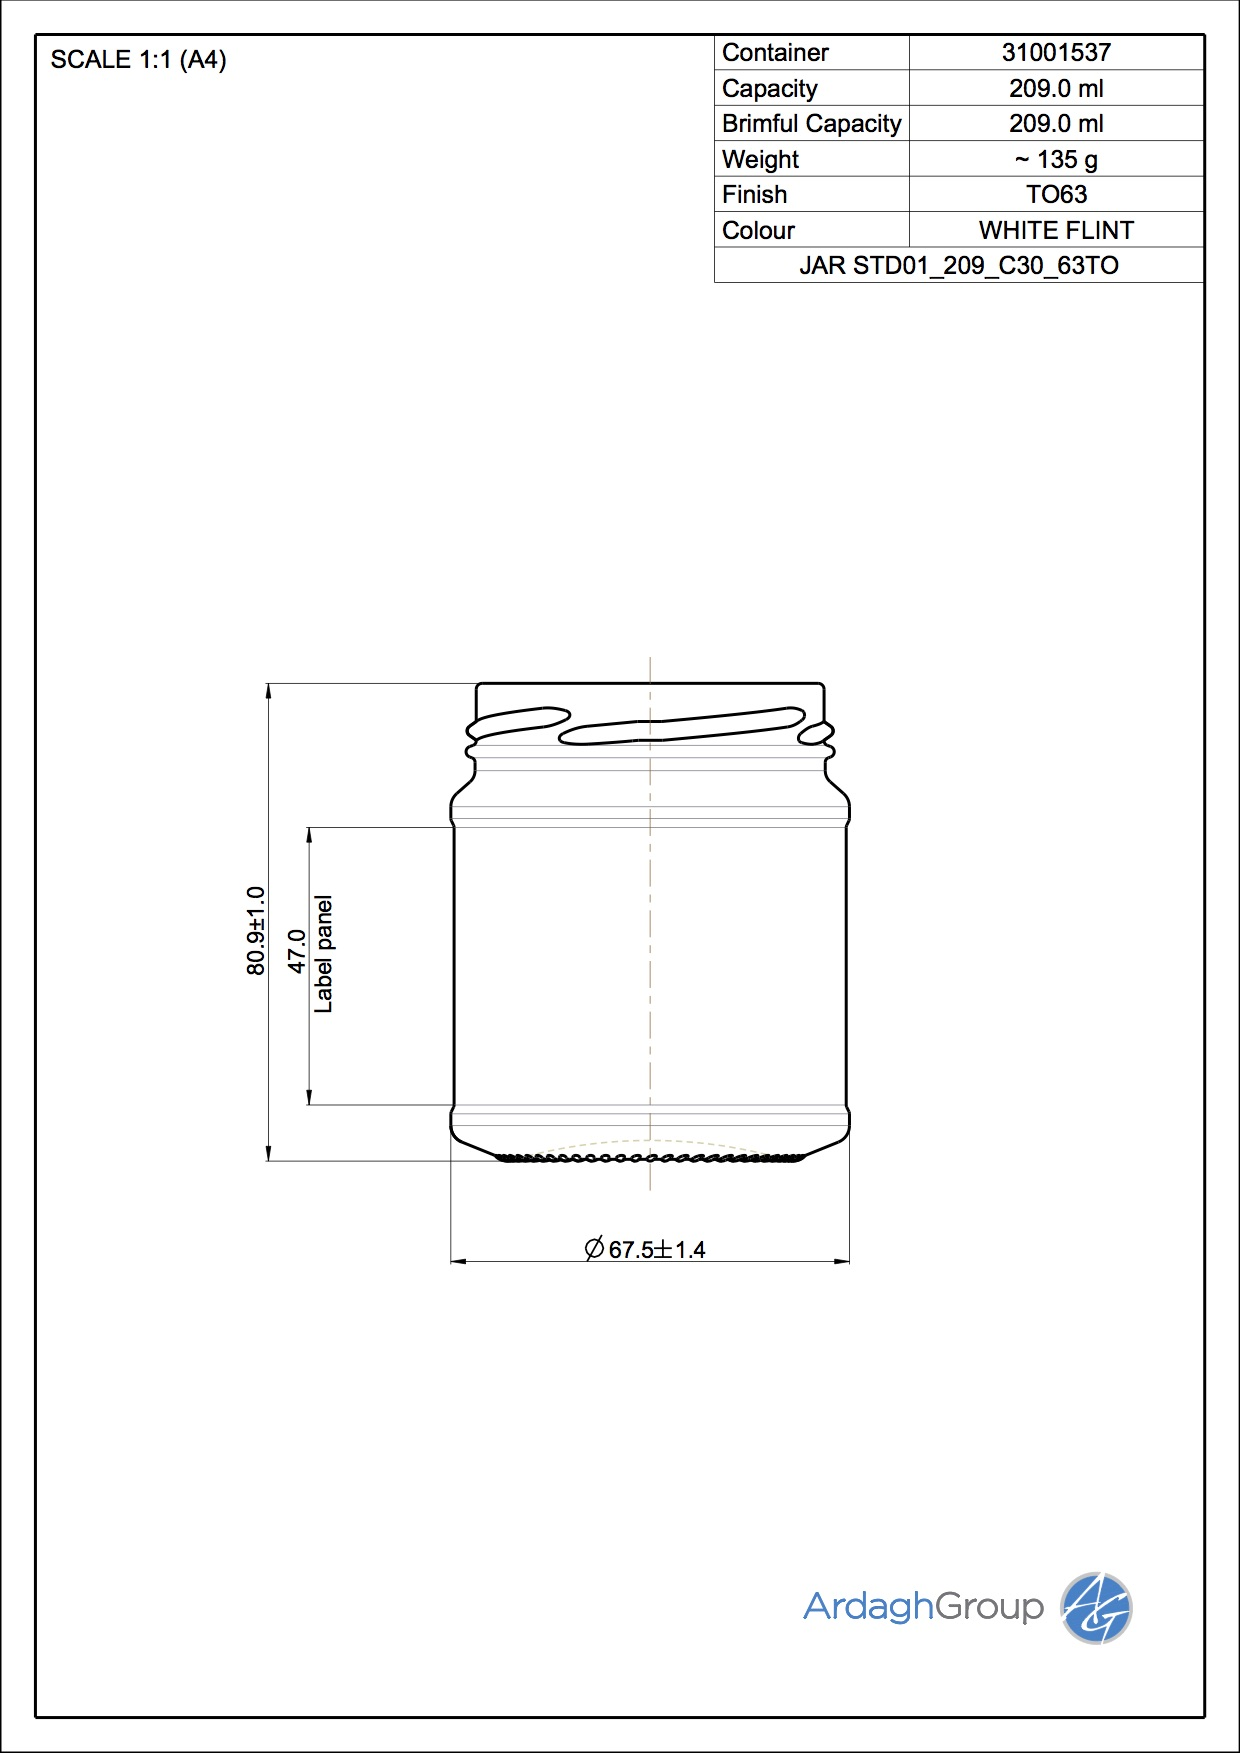 Jar STD01 209 C30 63TO